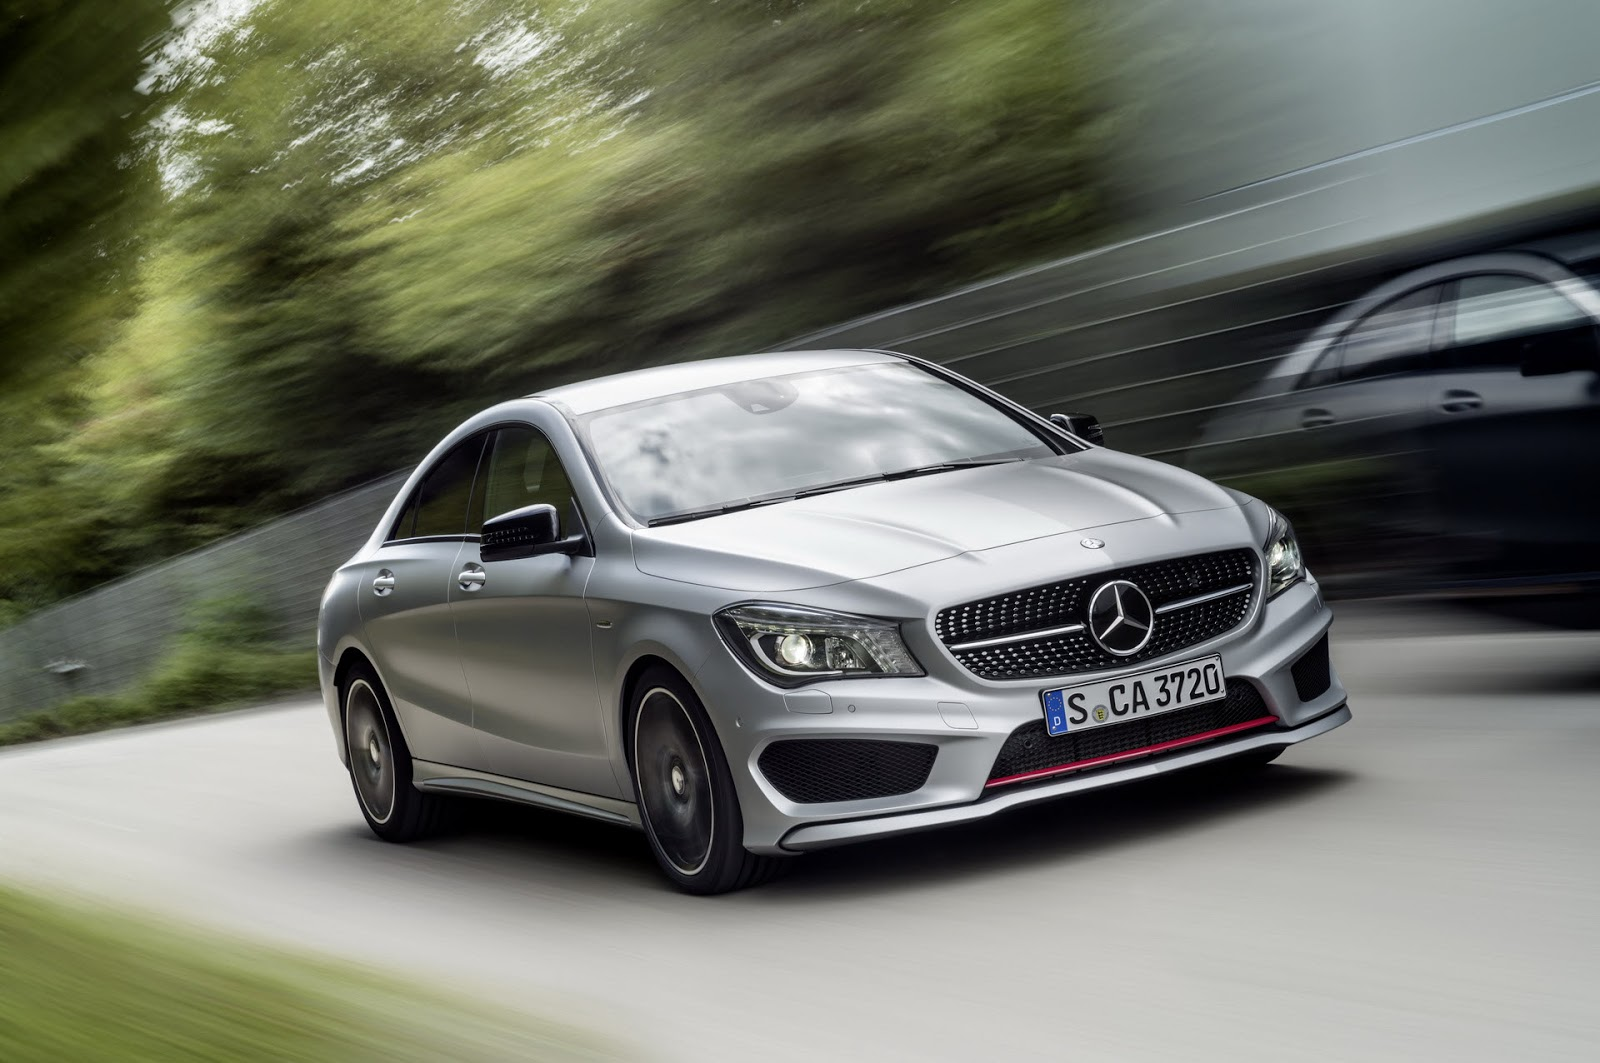 Mercedes benz cla 250 sport cla 45 amg racing series for Benz mercedes cla